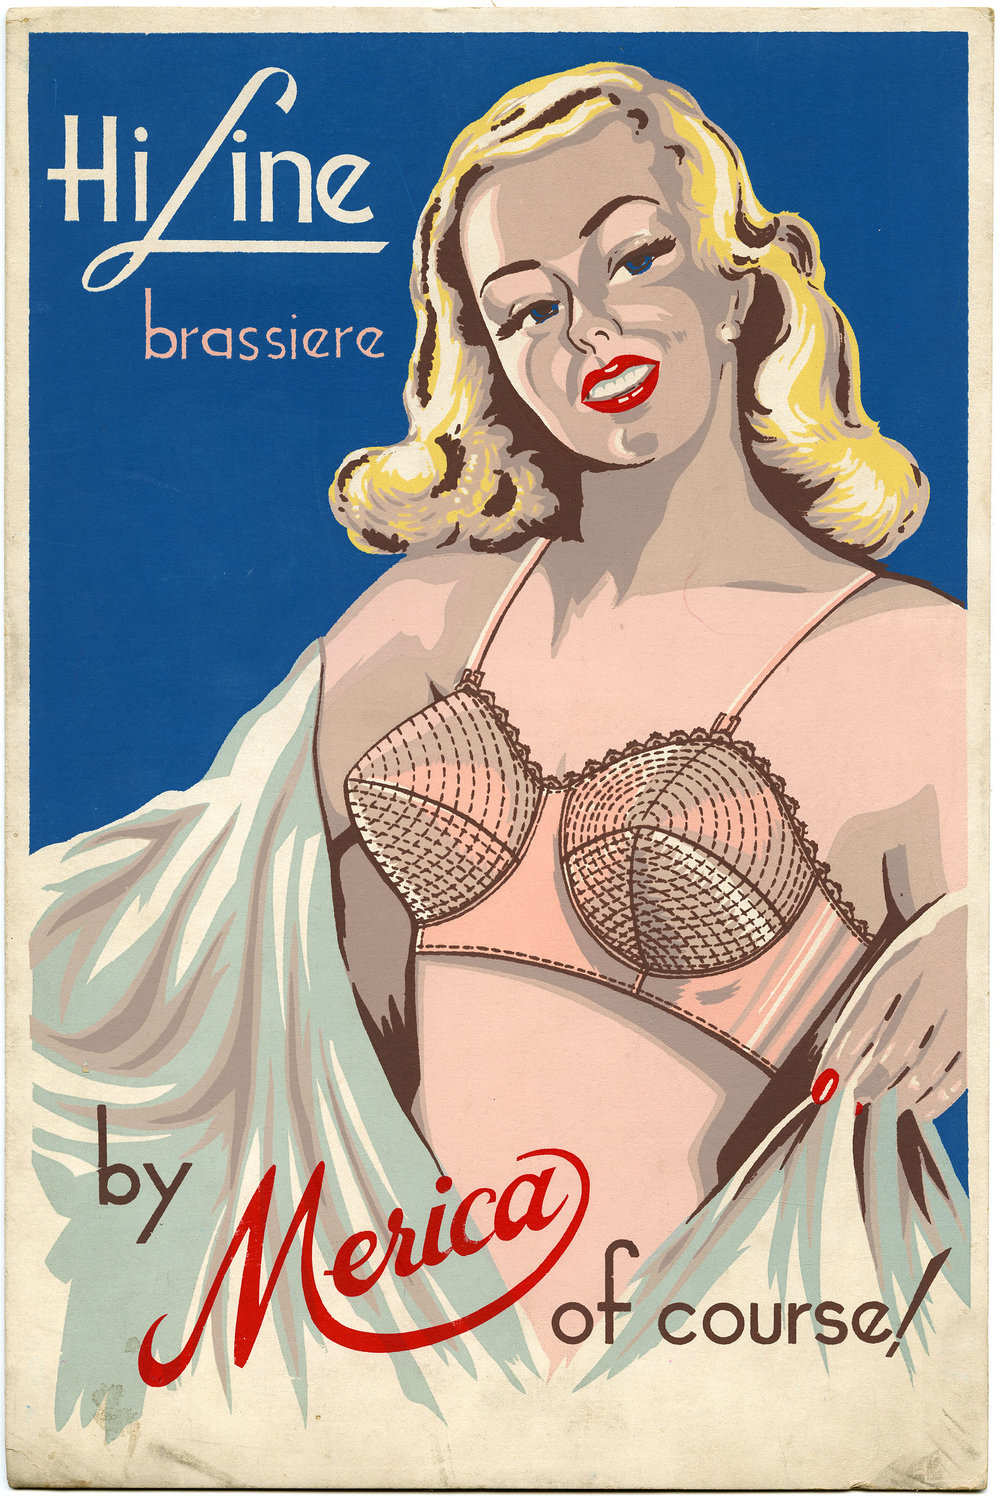 Abikhair---Advert-Merica-Hi-Line-Bra---ARM-01.jpg